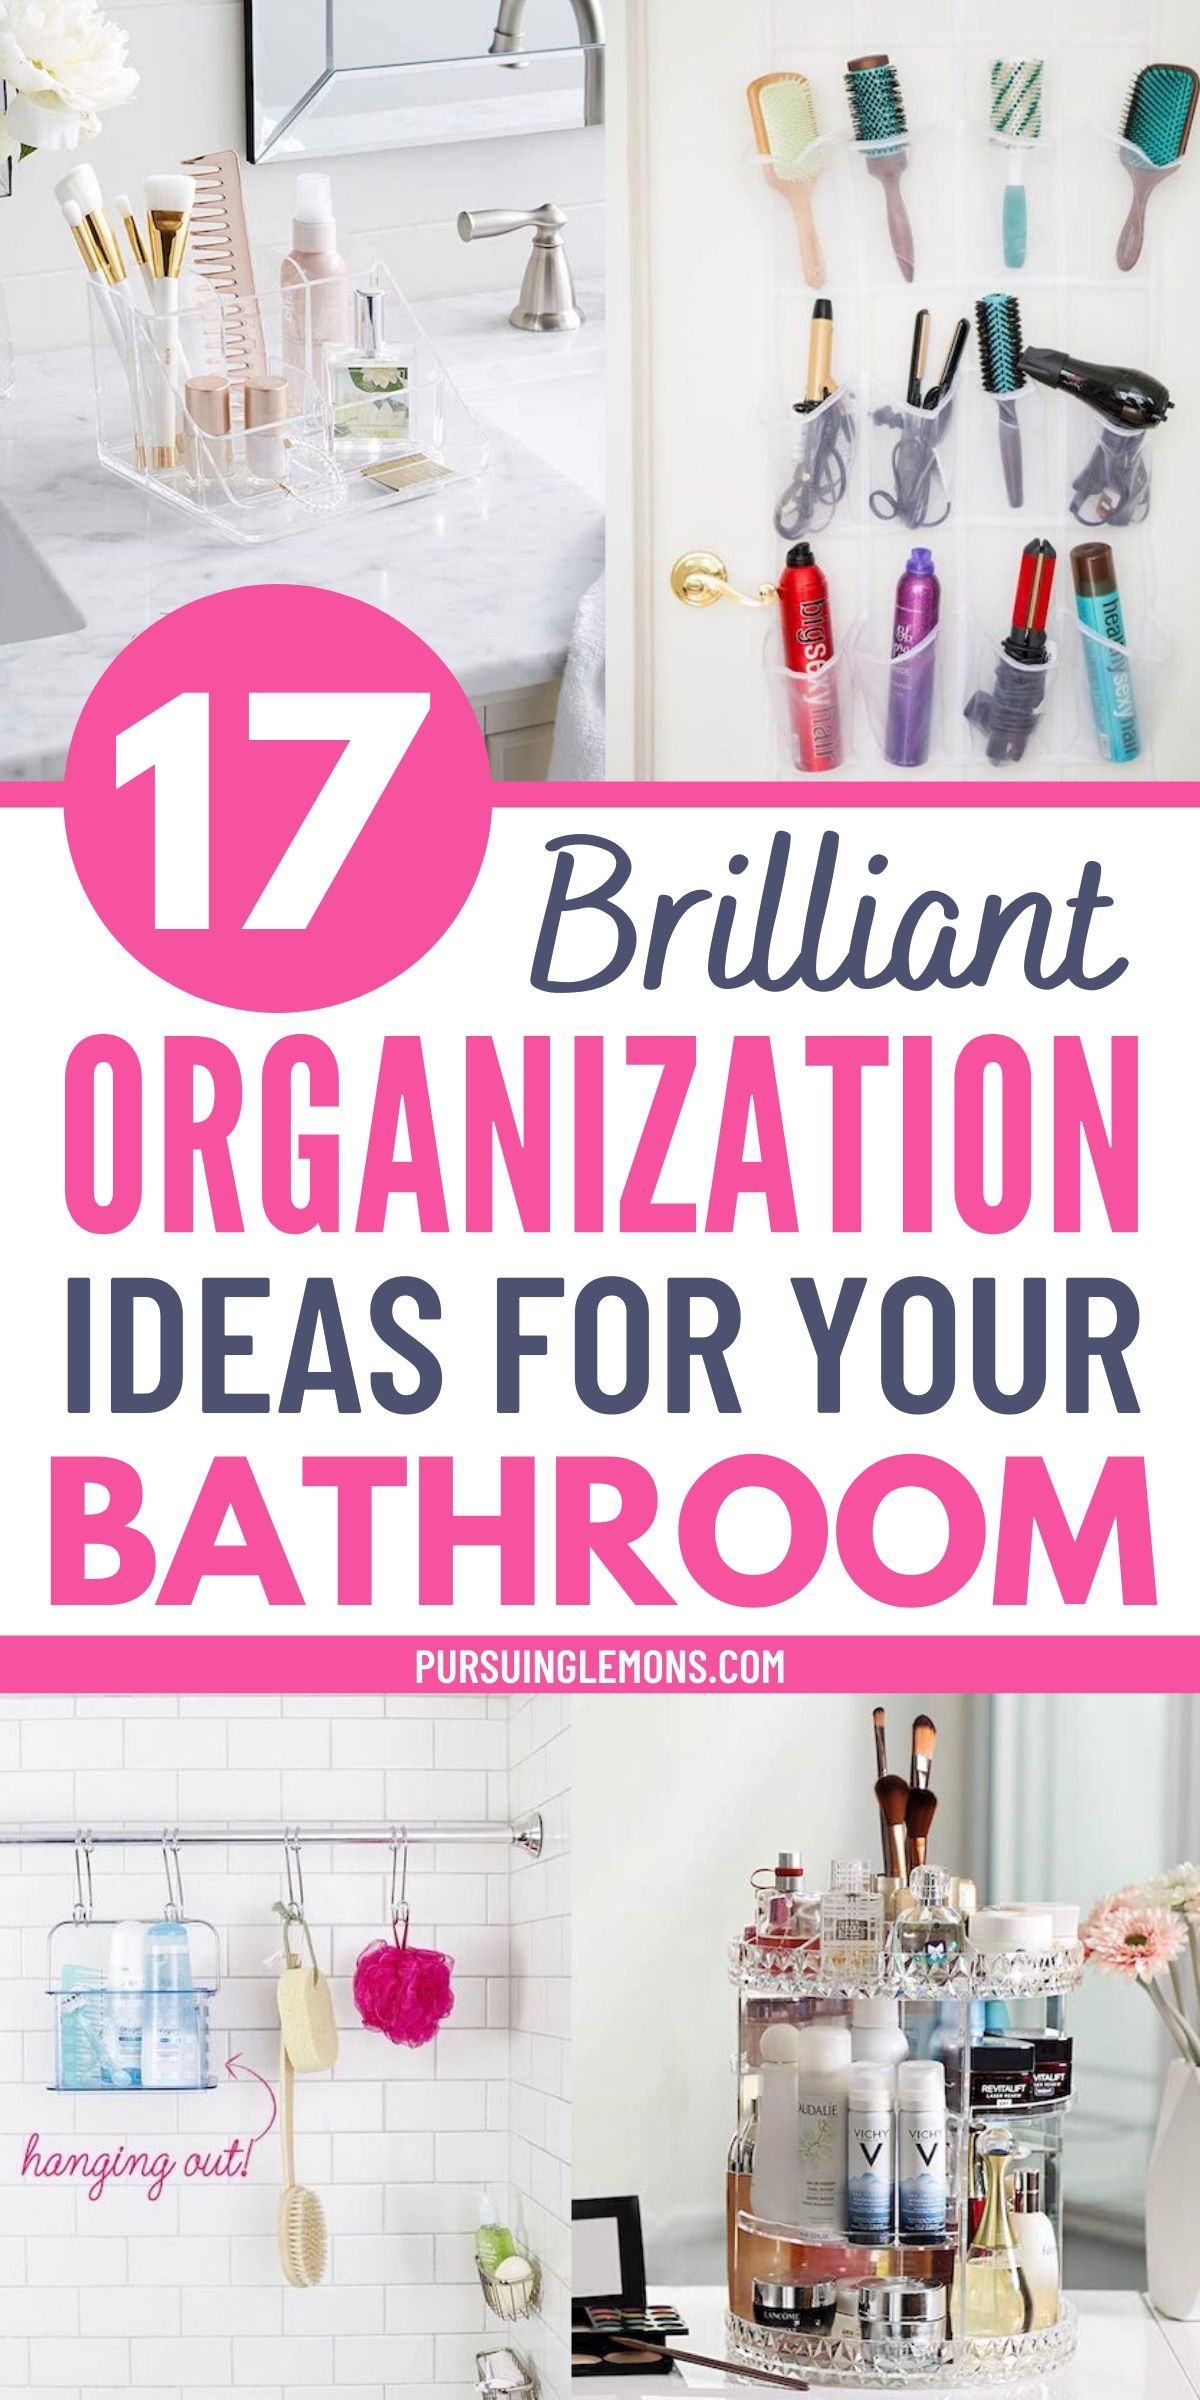 Keep your small bathroom organized with these bathroom organization hacks. Organizing your bathroom is very important and you can do it with these bathroom organizing ideas. If you want to get your bathroom tidy and clean, you can start with these bathroom organization ideas today! #bathroomideasdiy #organizingbathroom